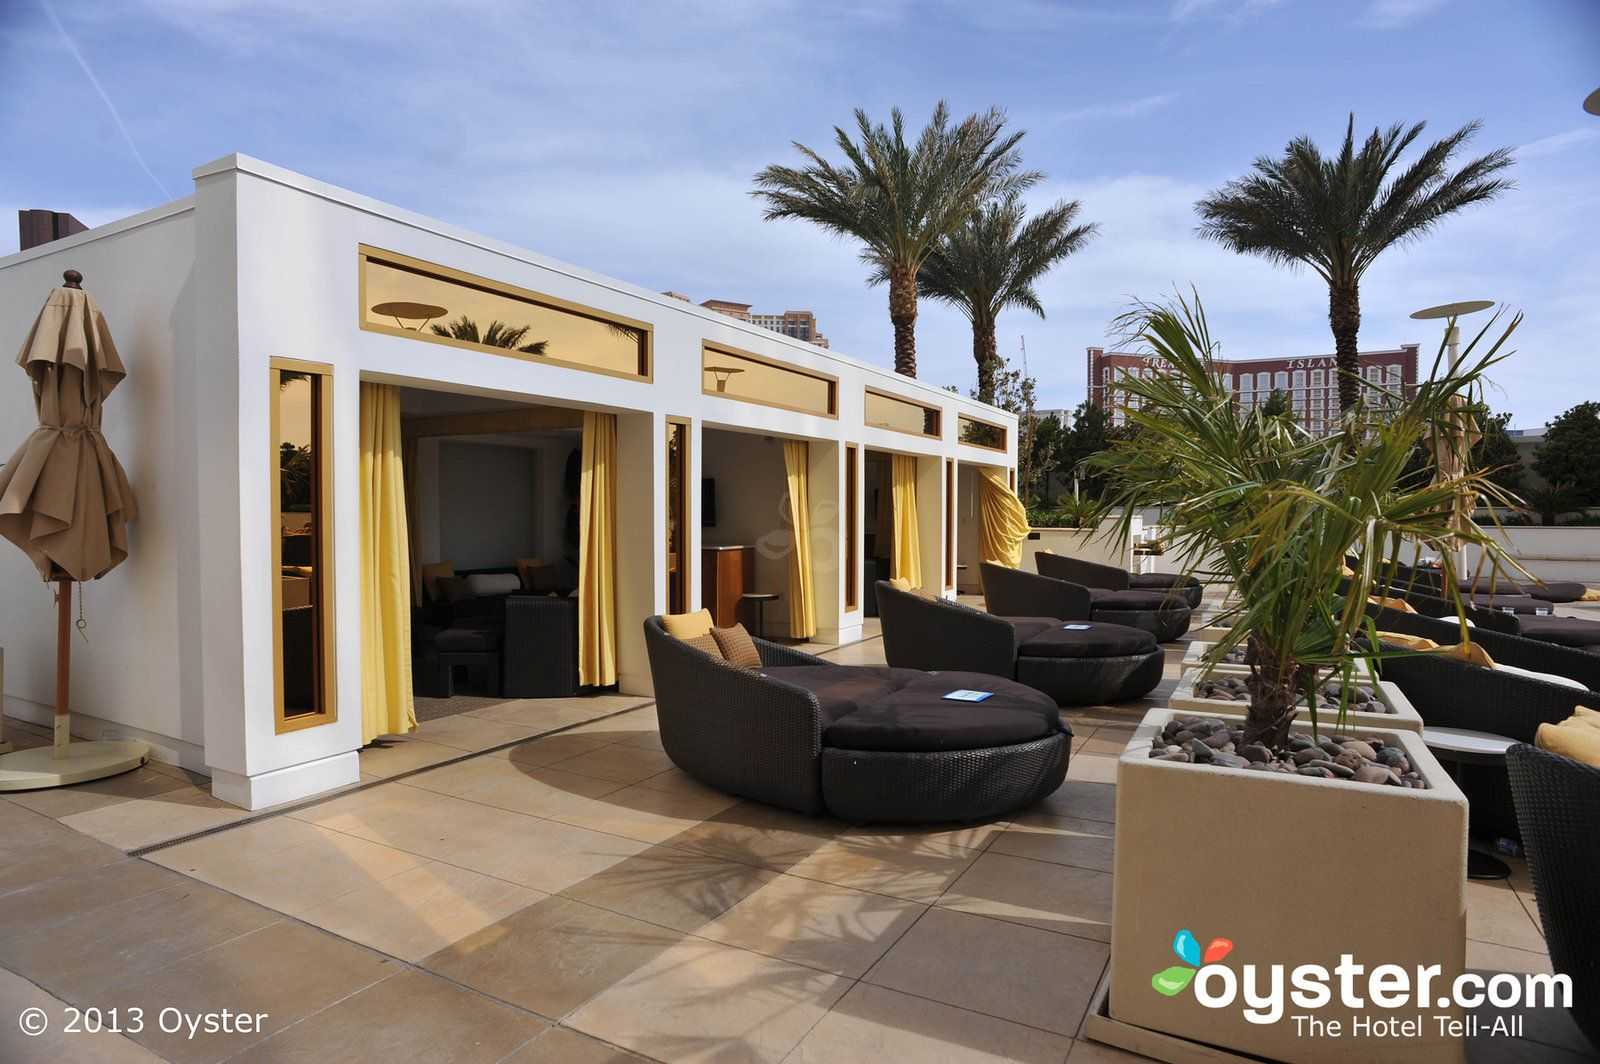 Pool Cabanas Full Screen Poolside Cabanas At The Trump International Hotel T Penthouse For Sale Trump International Hotel Las Vegas Trump International Hotel